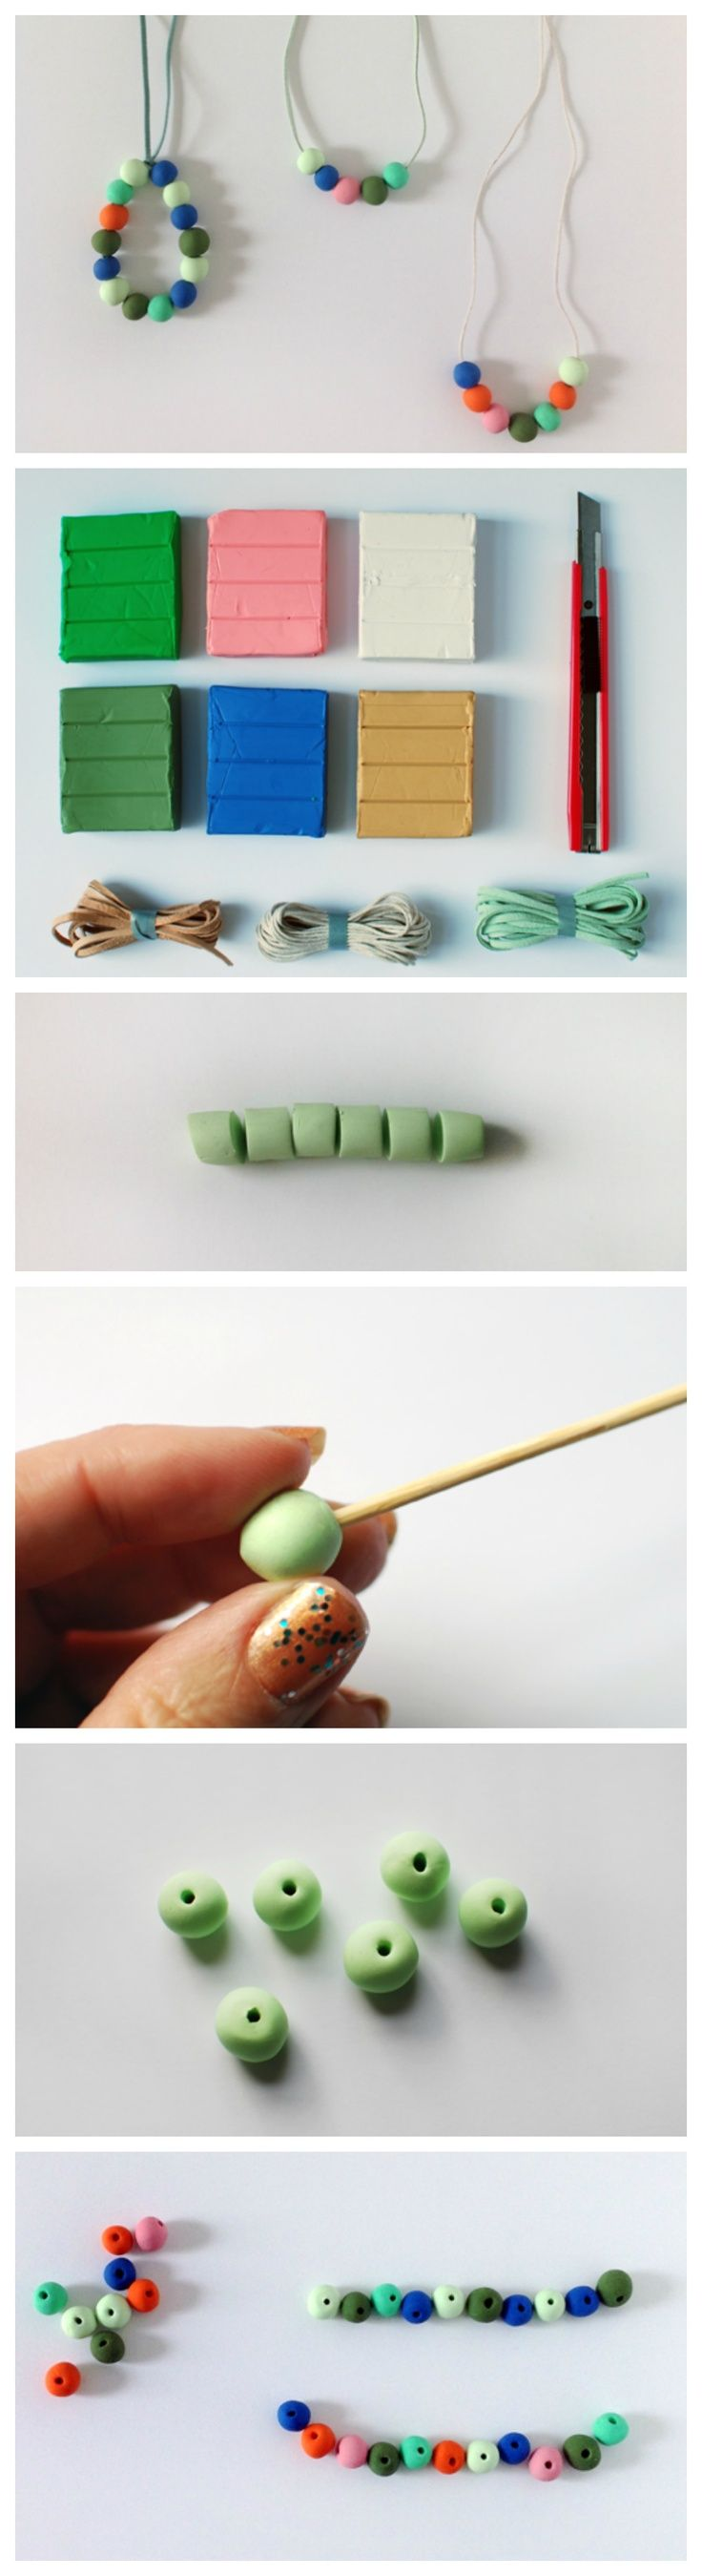 Learn how to make your own colourful polymer clay beads with this step-by-step tutorial.: